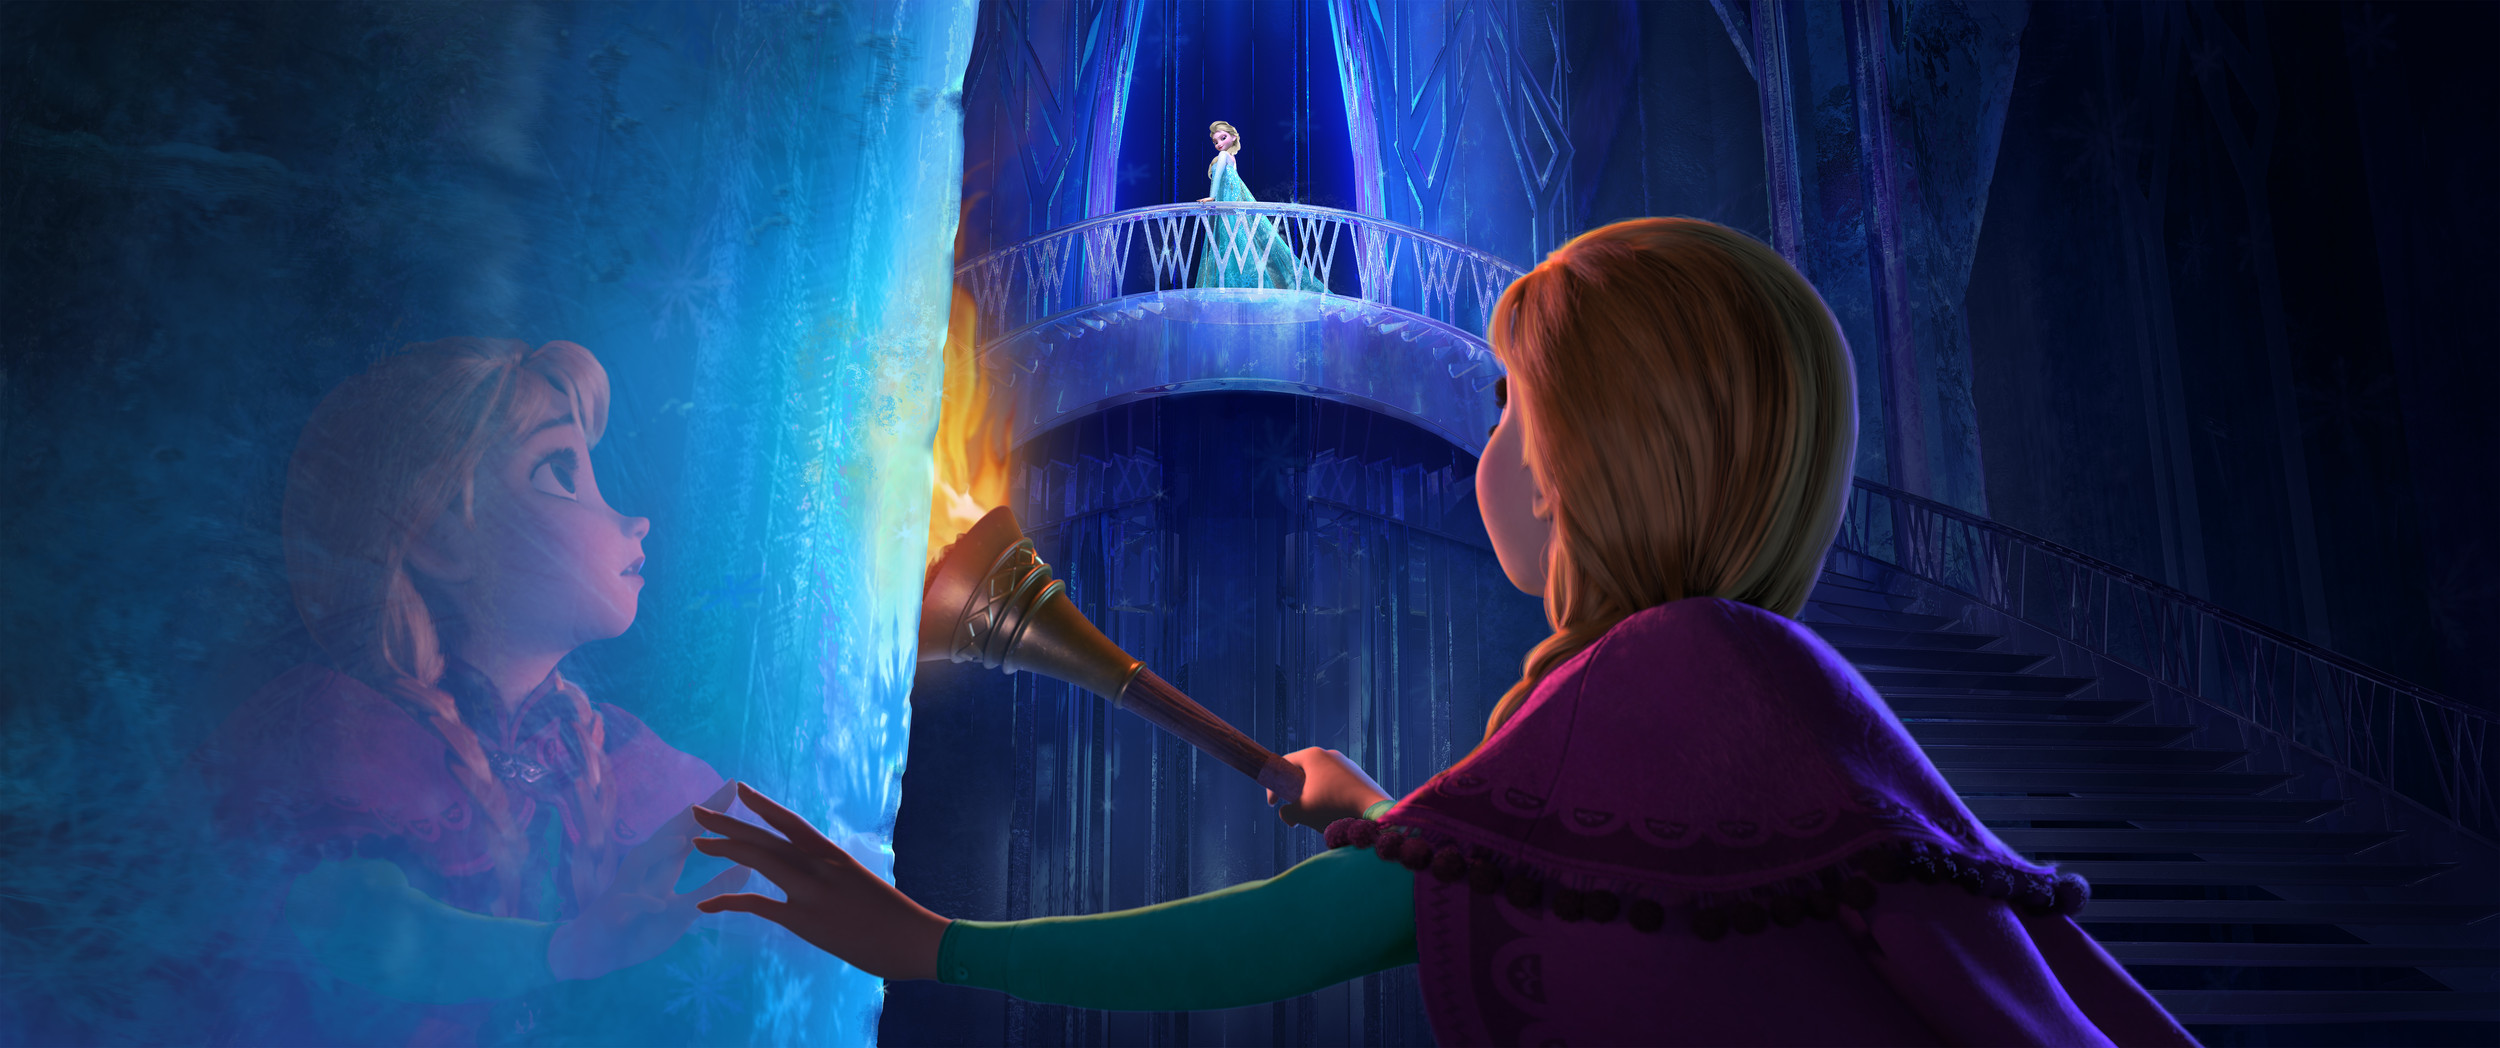 "Queen-to-be Elsa, learning to harness her power to control the cold, is isolated from younger sister Anna in ""Frozen."""